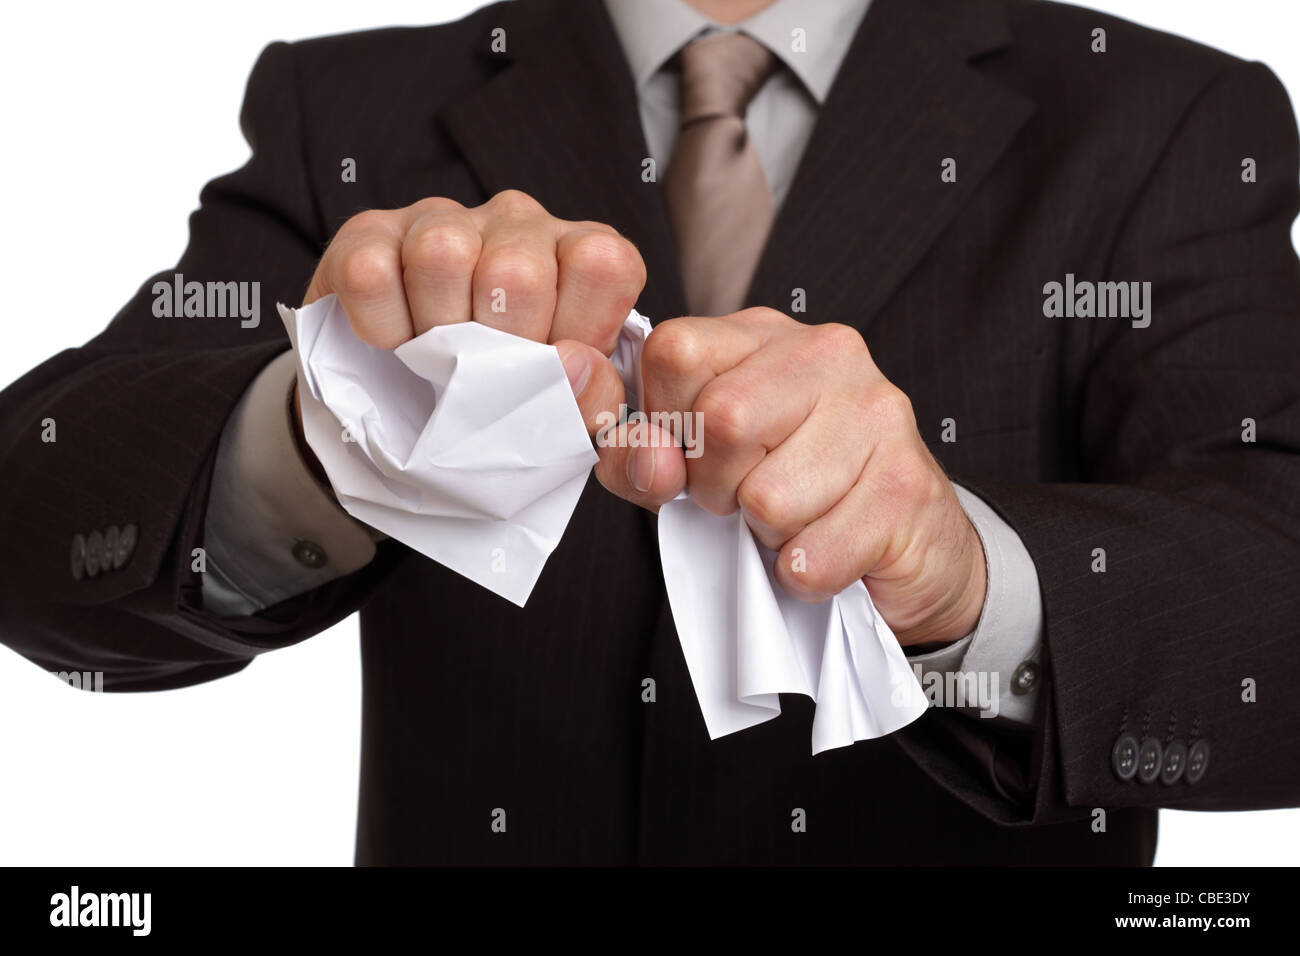 Tearing up the contract - Stock Image